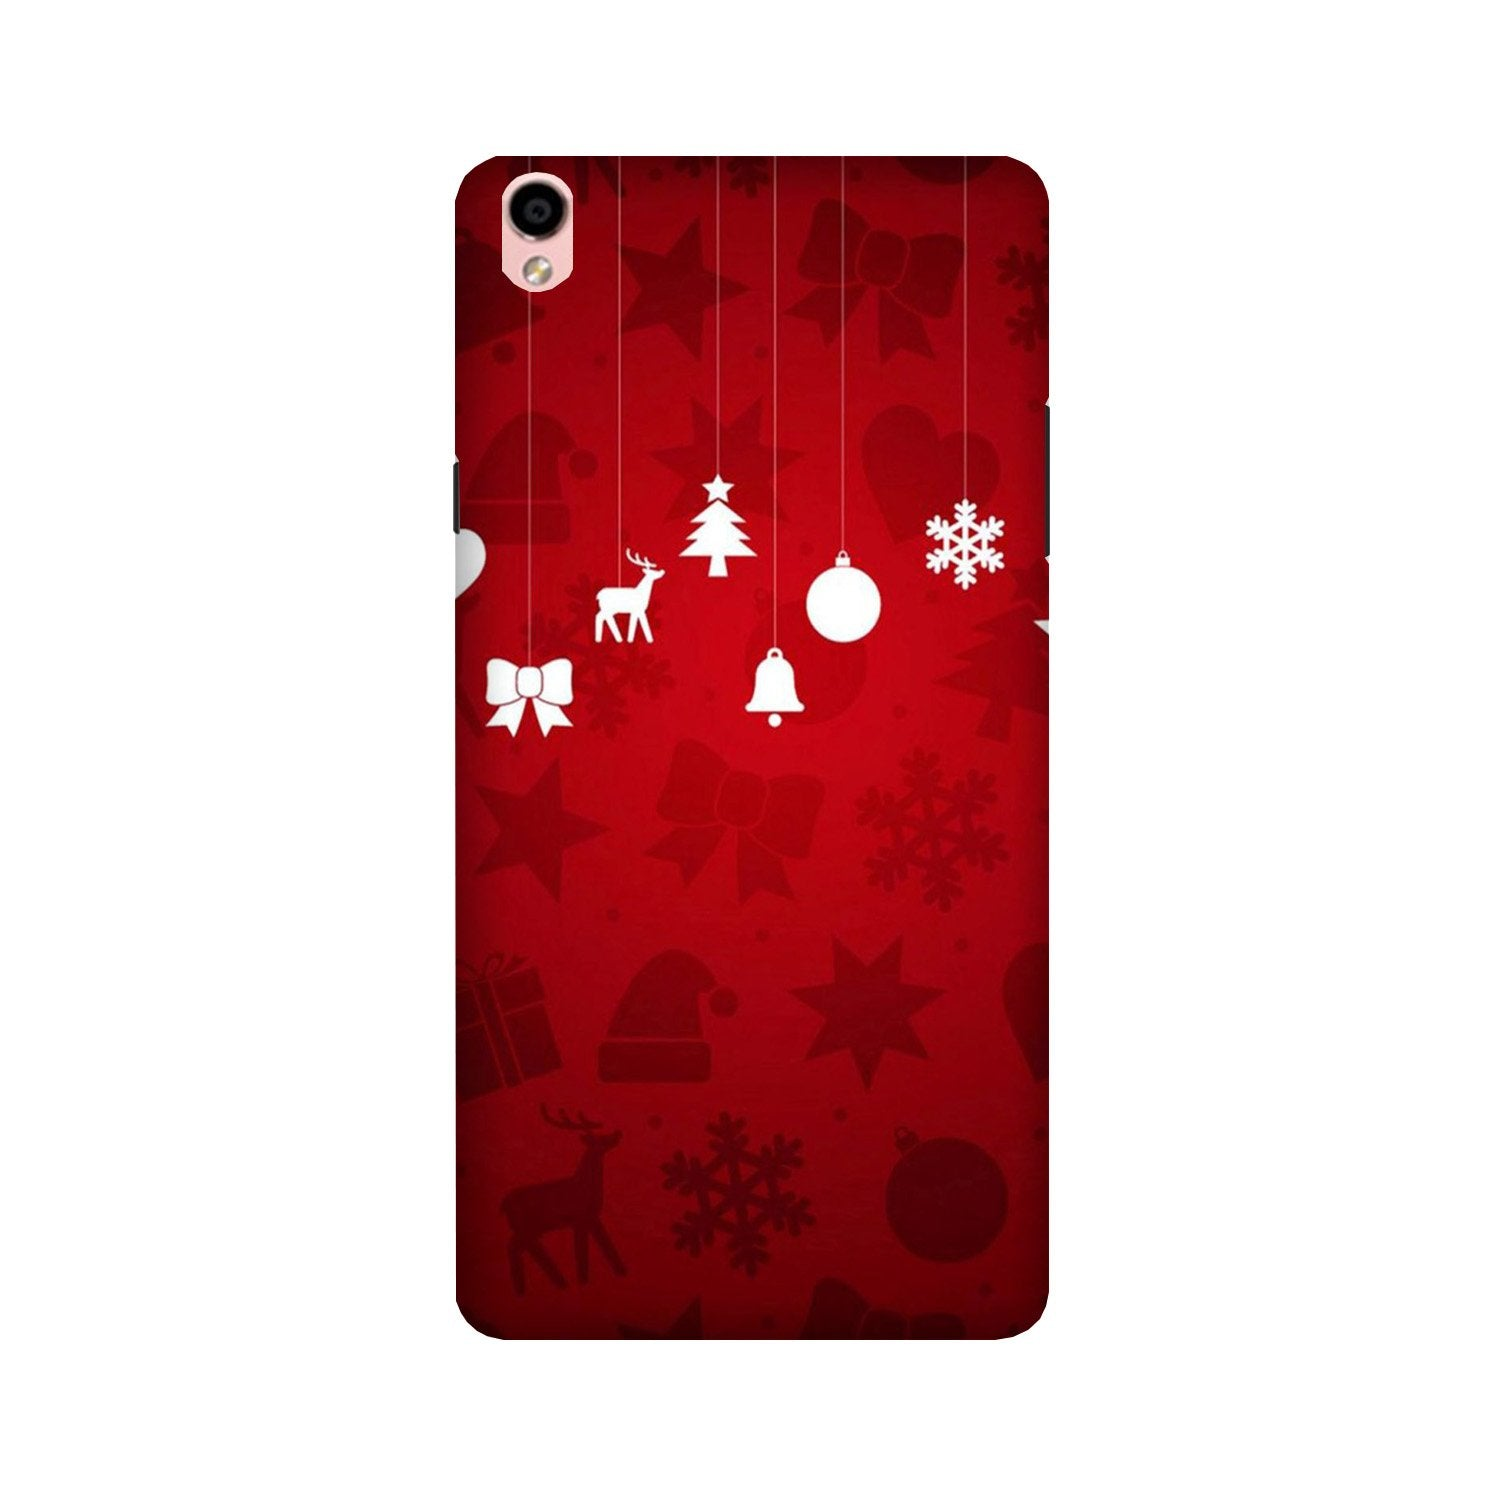 Christmas Case for Oppo F1 Plus